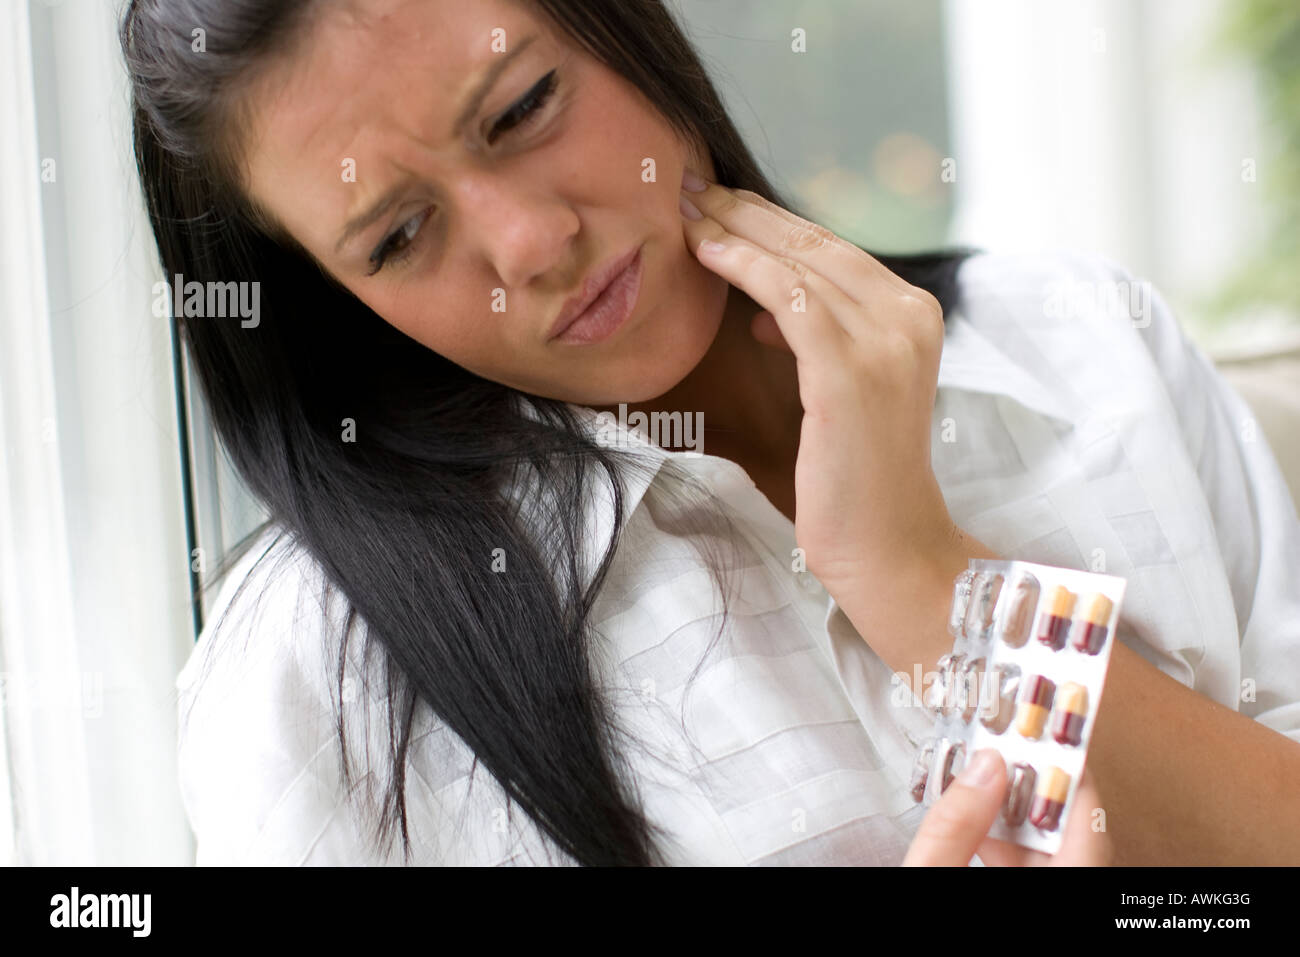 woman with toothache and pills - Stock Image